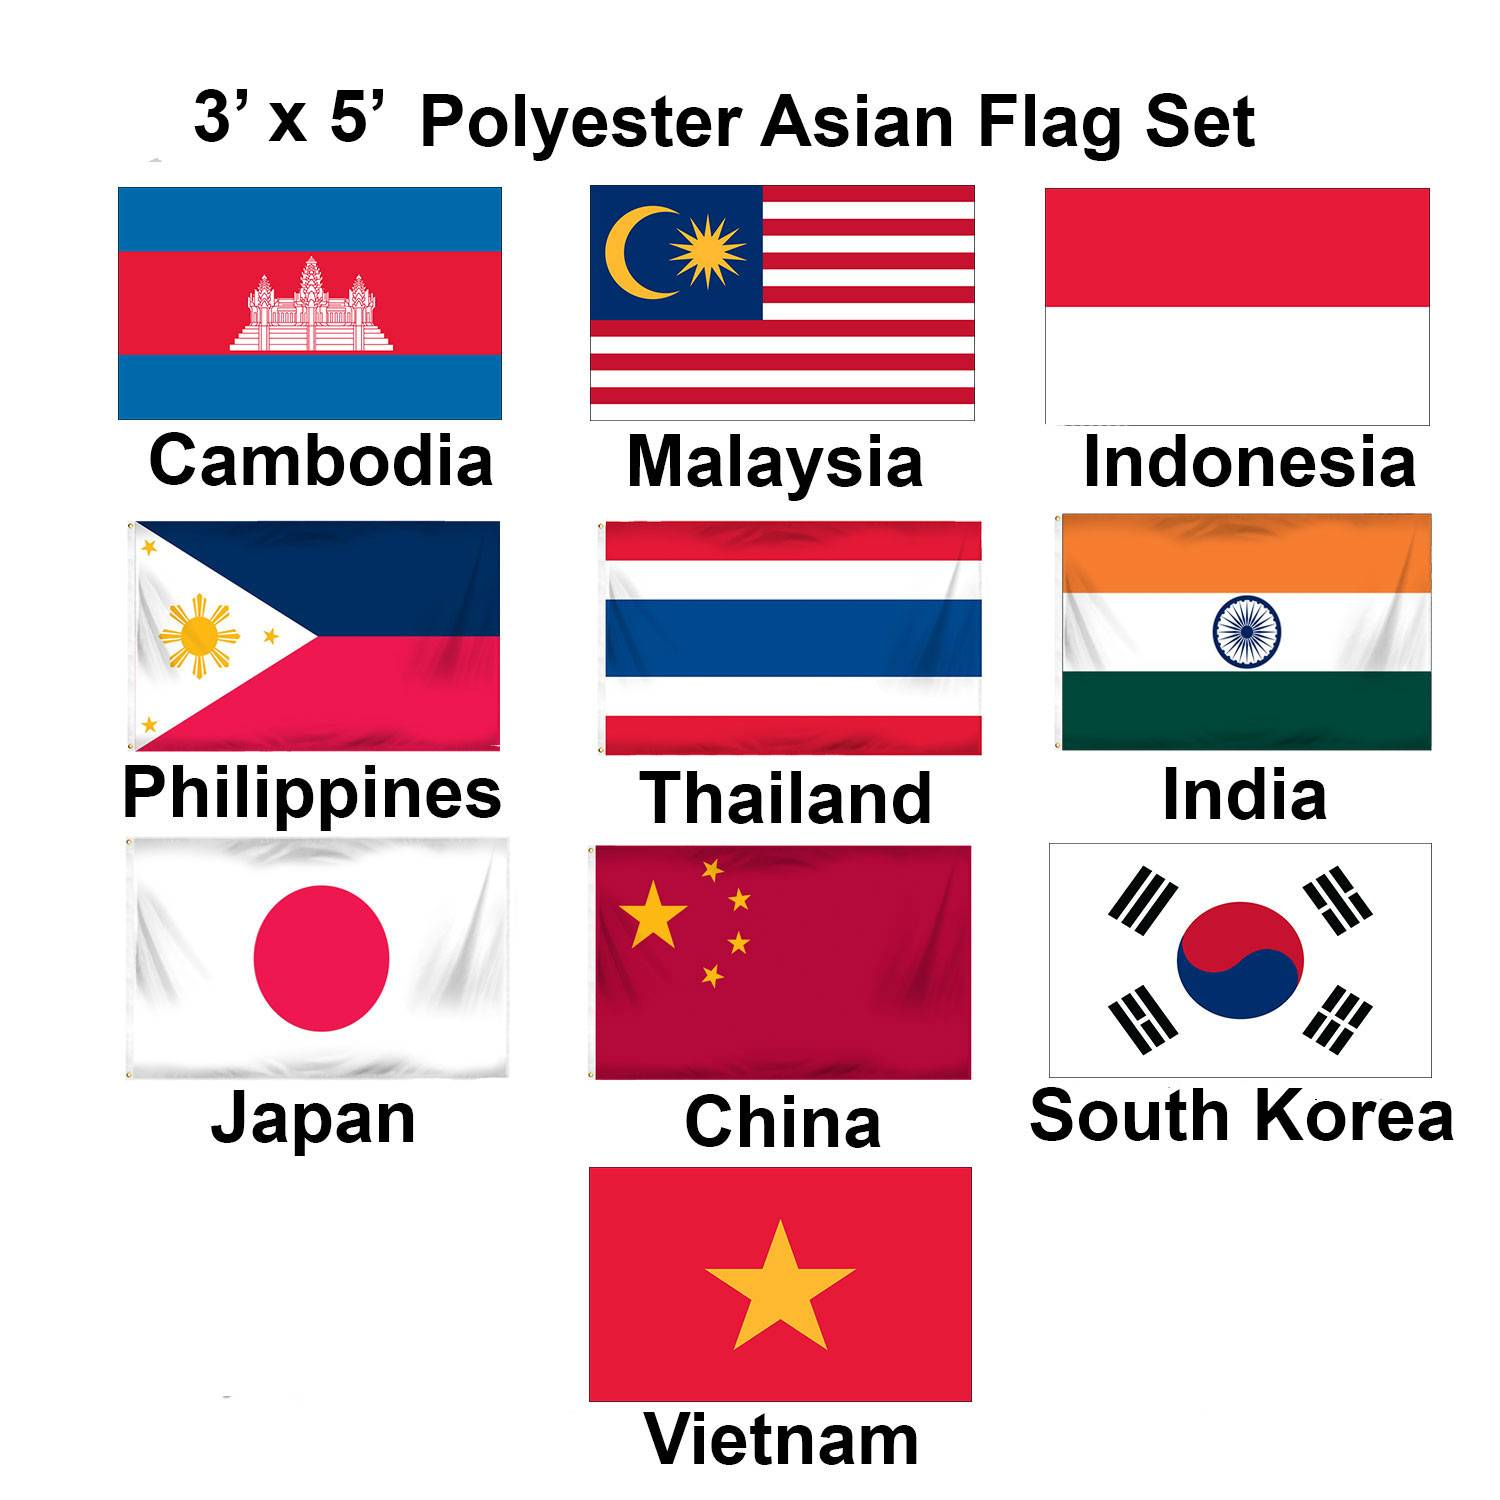 ASian Flags for sale by 1-800 Flags